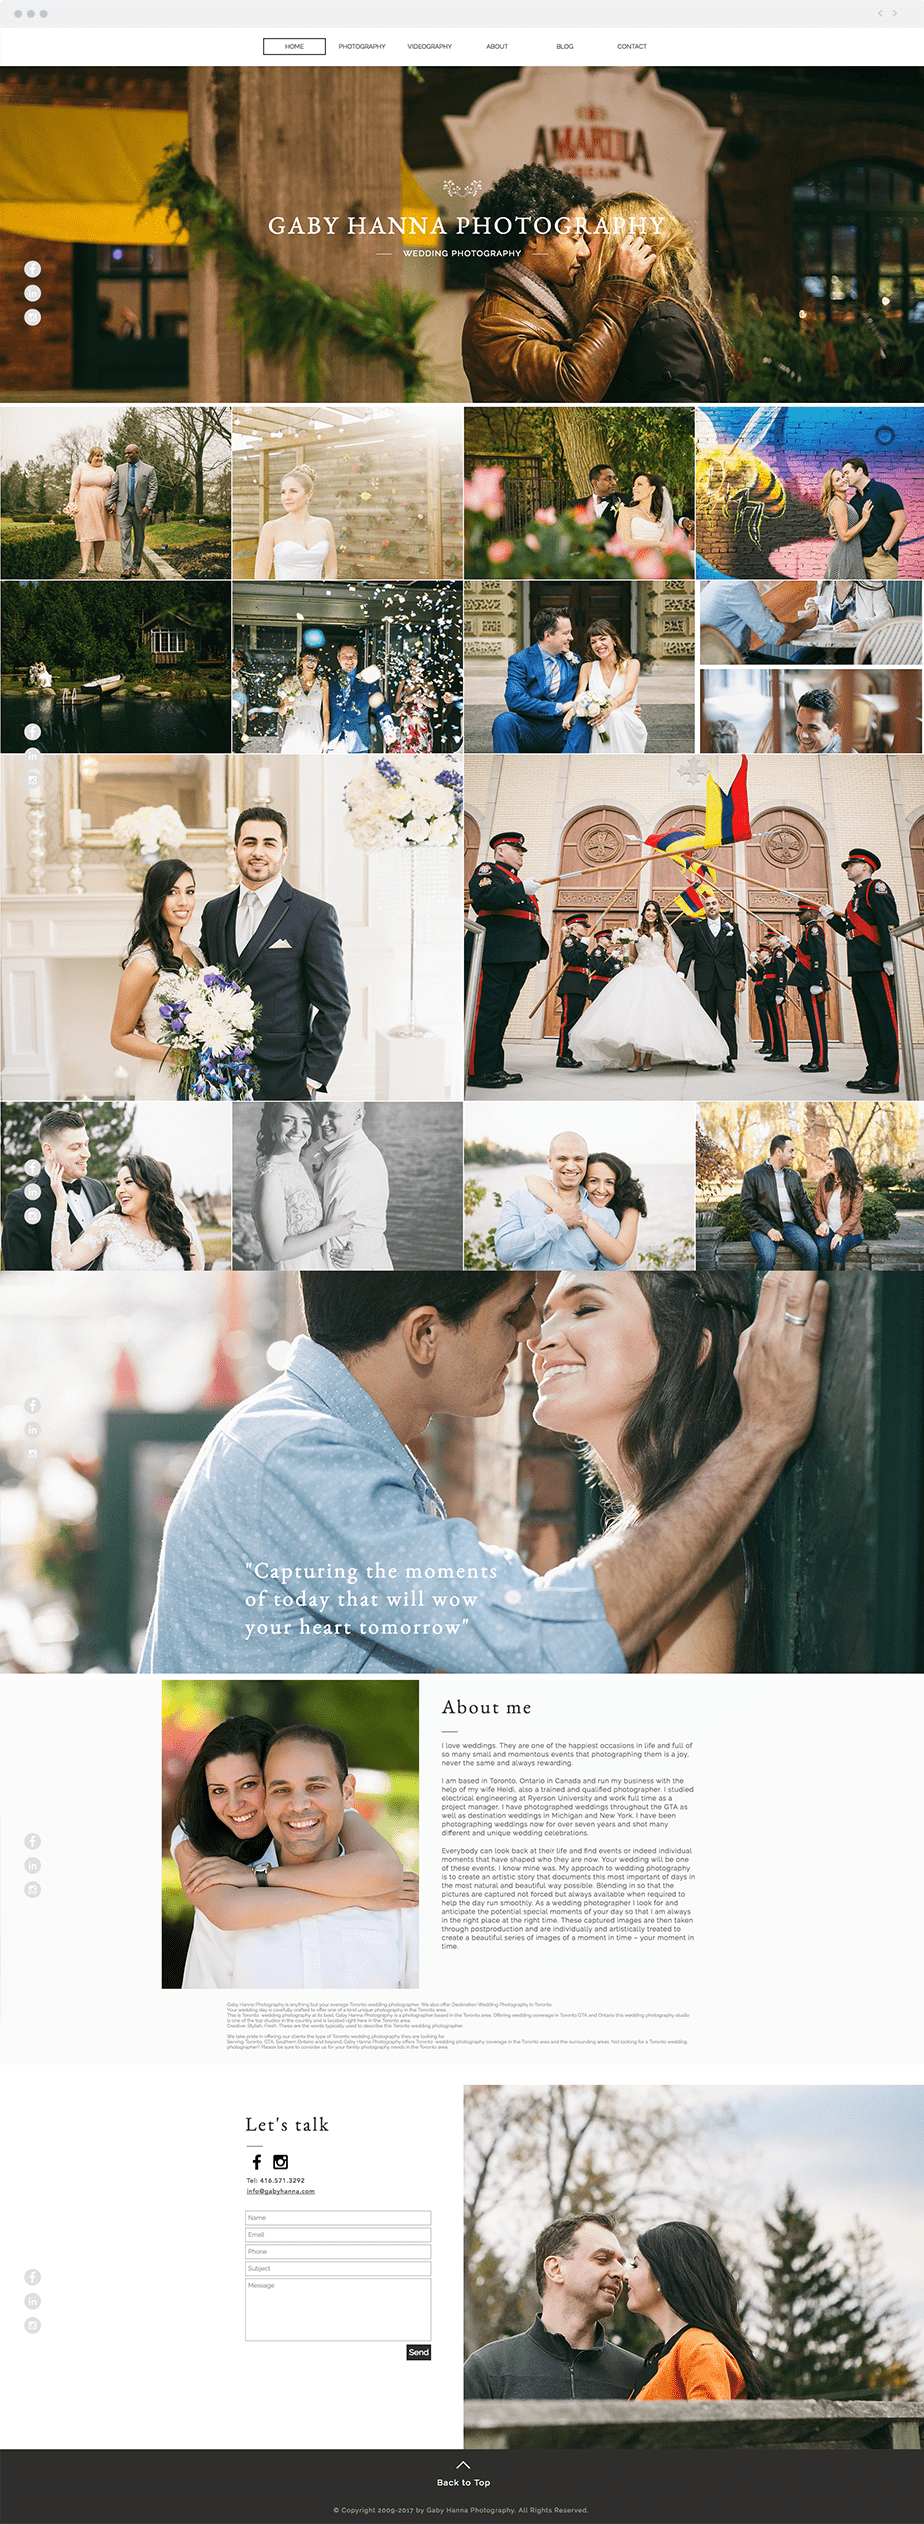 Stunning Wix online portfolio by wedding photographer Gaby Hanna